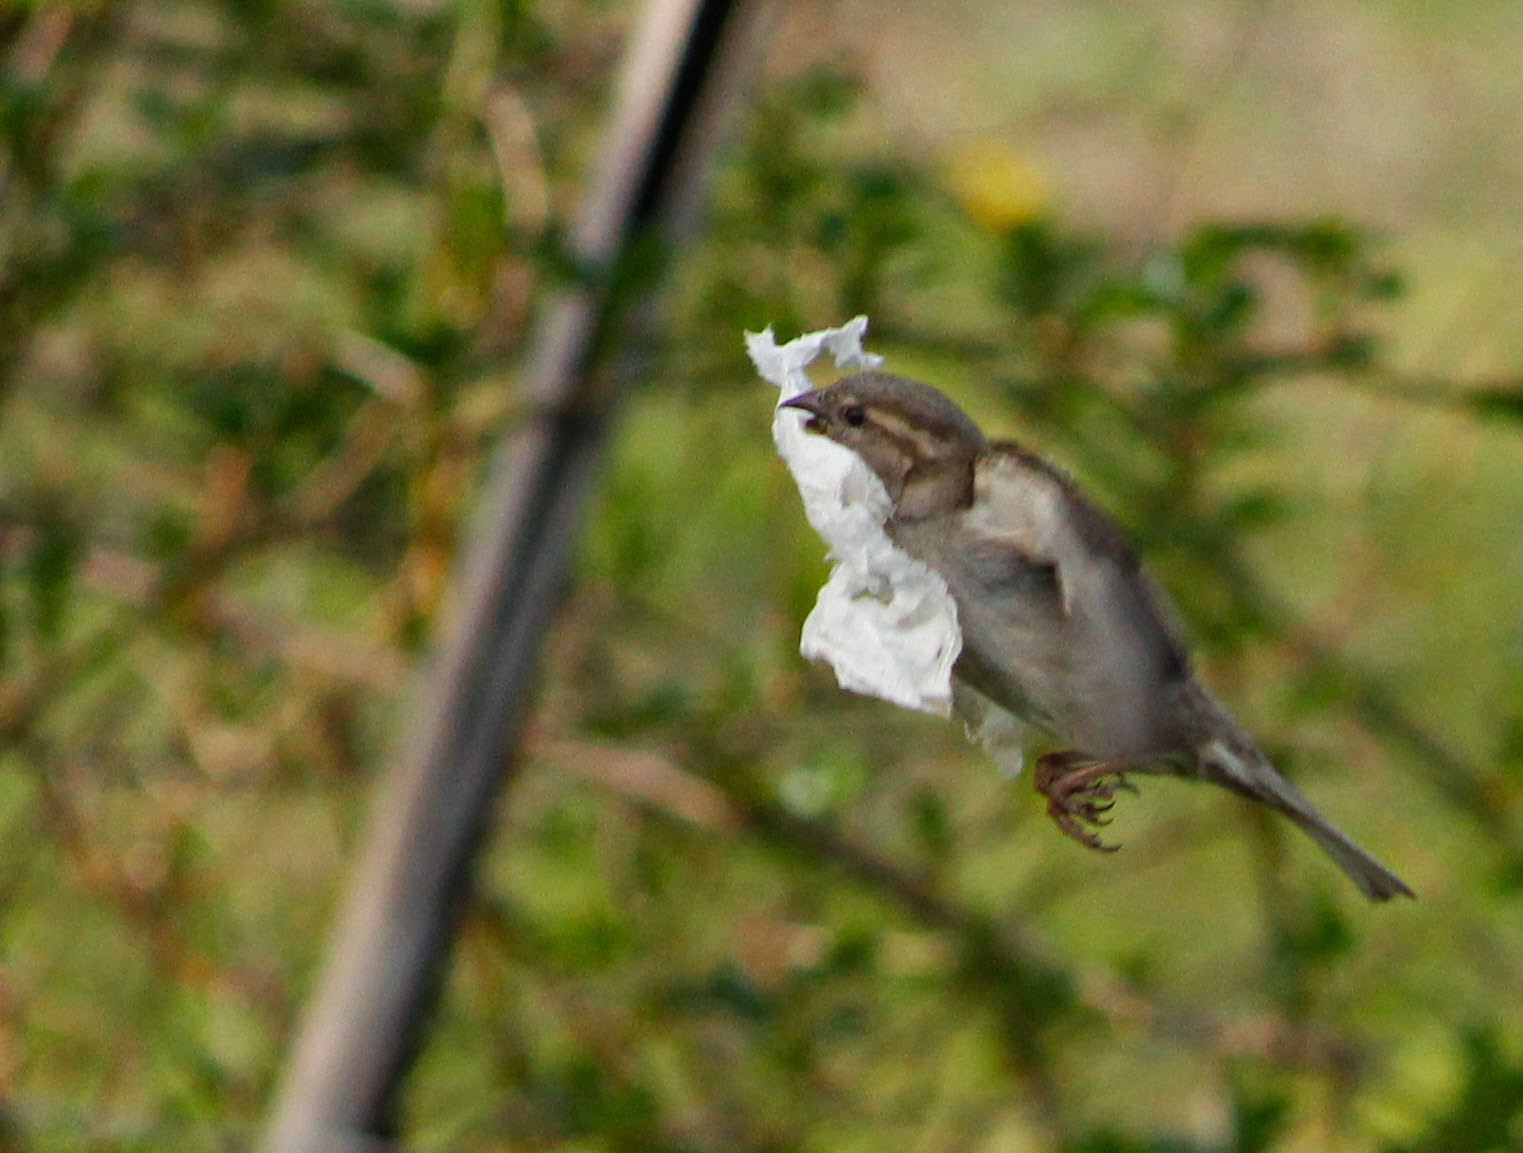 female house sparrow flies with tissue